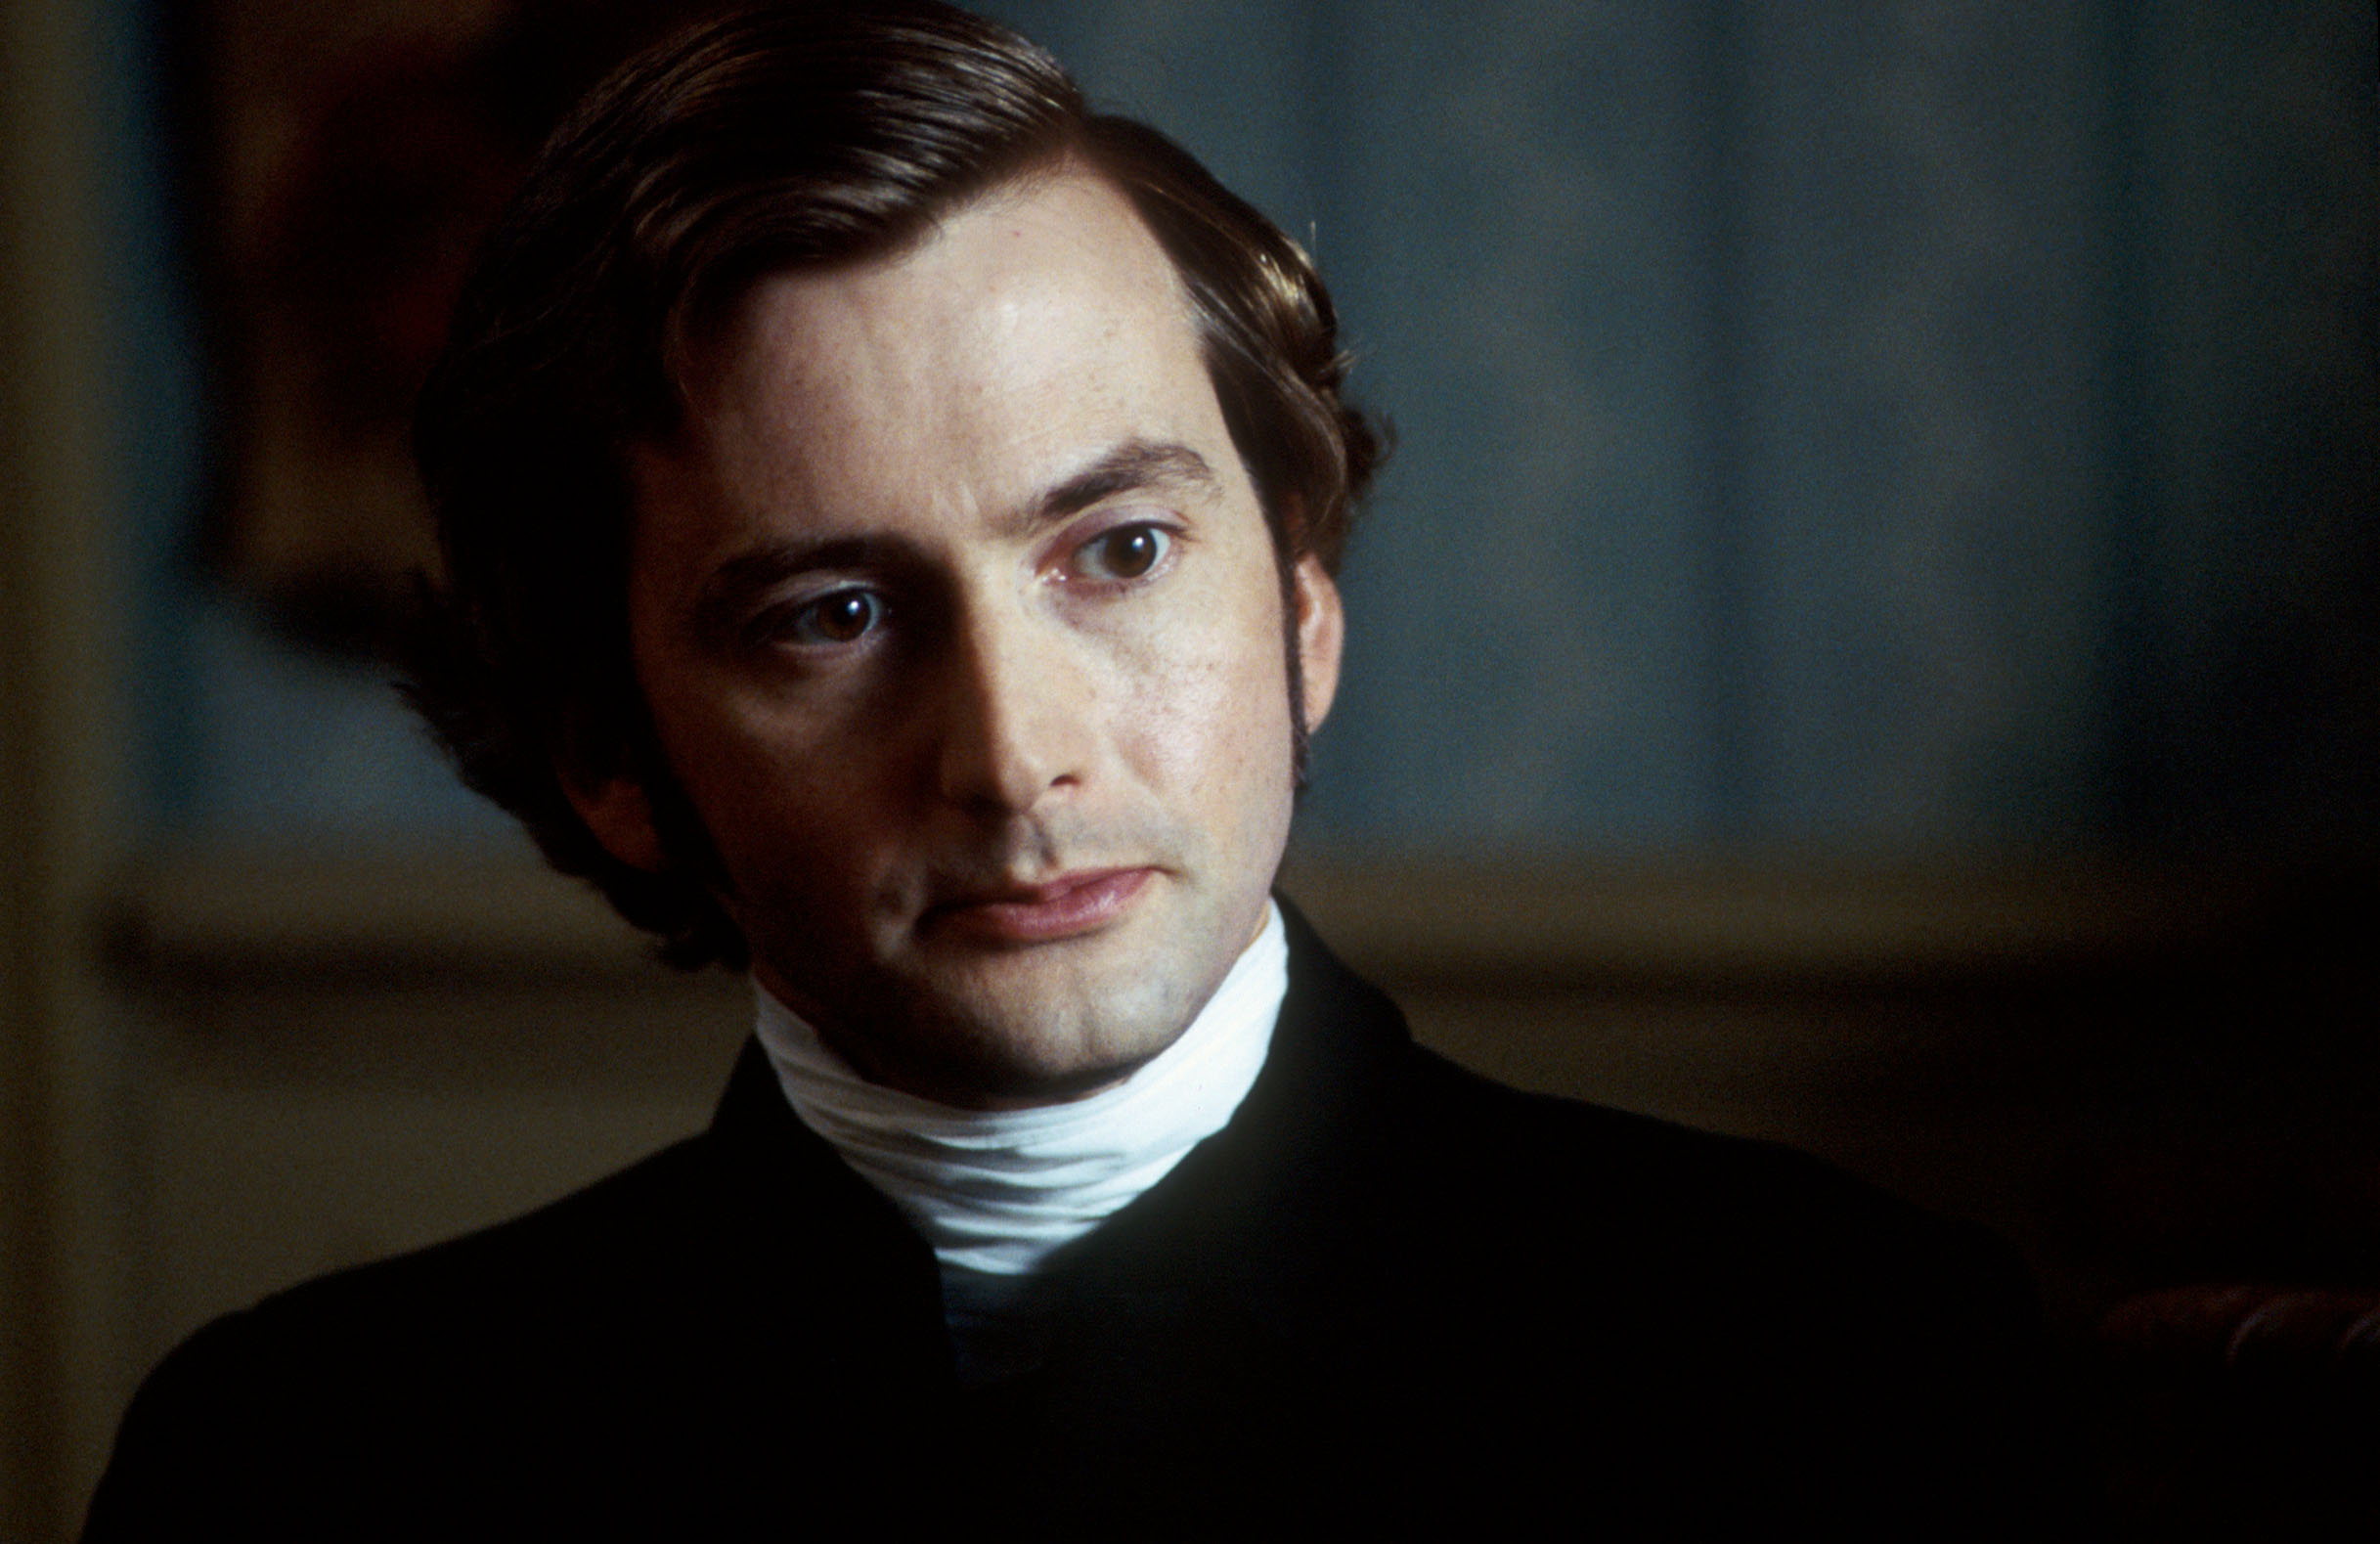 "Tennant as a babe-magnet minister? The star showed off his comedic chops in this adaptation of Anthony Trollope's novel about the collapse of a young couple's marriage. Watch a clip, which features Fenella Woolgar, who played Agatha Christie in the Doctor Who episode, ""The Unicorn and the Wasp."""